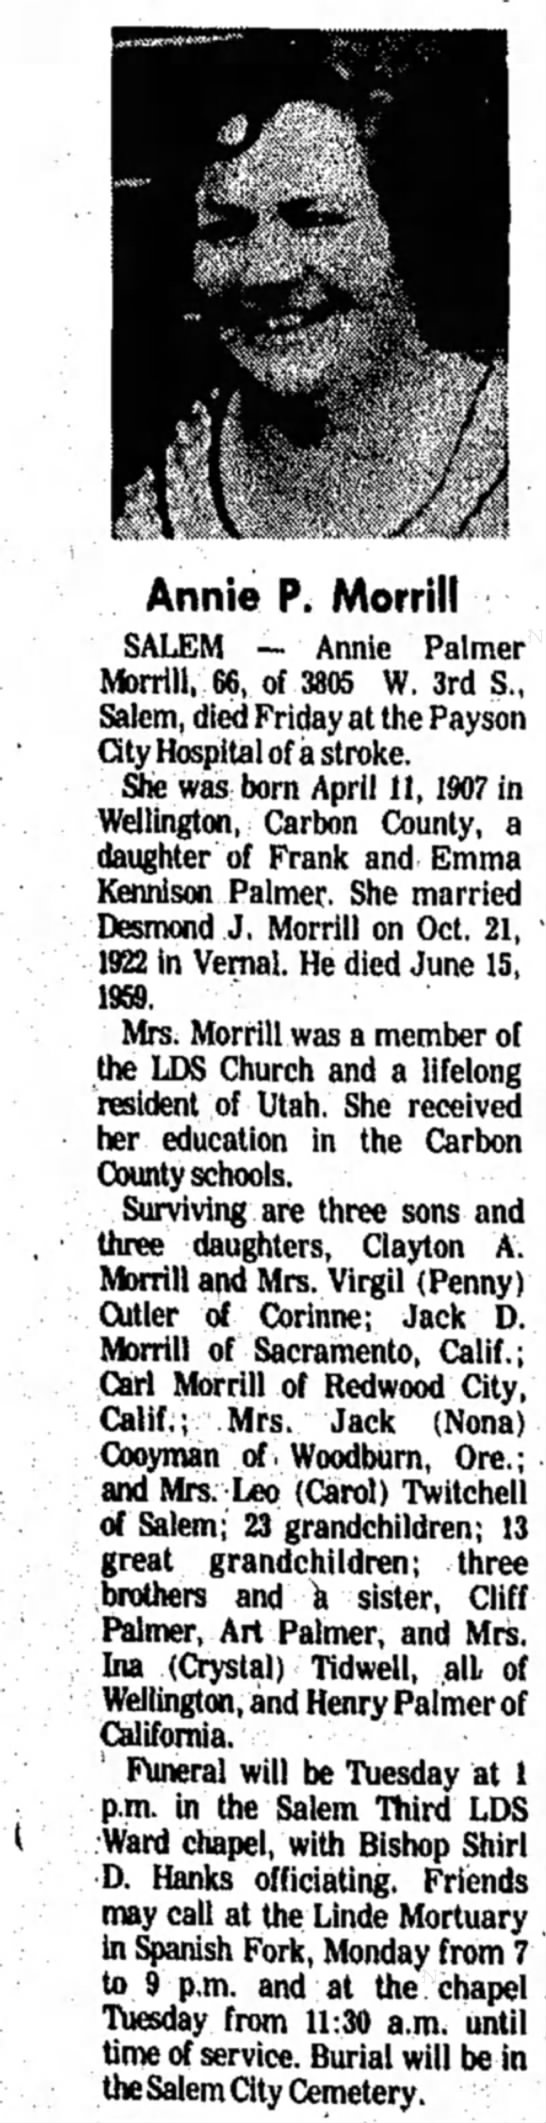 Annie Viola Palmer Morrill obituary - The Daily Herald (Provo, UT) - 20 Jan 1974, page 4 -